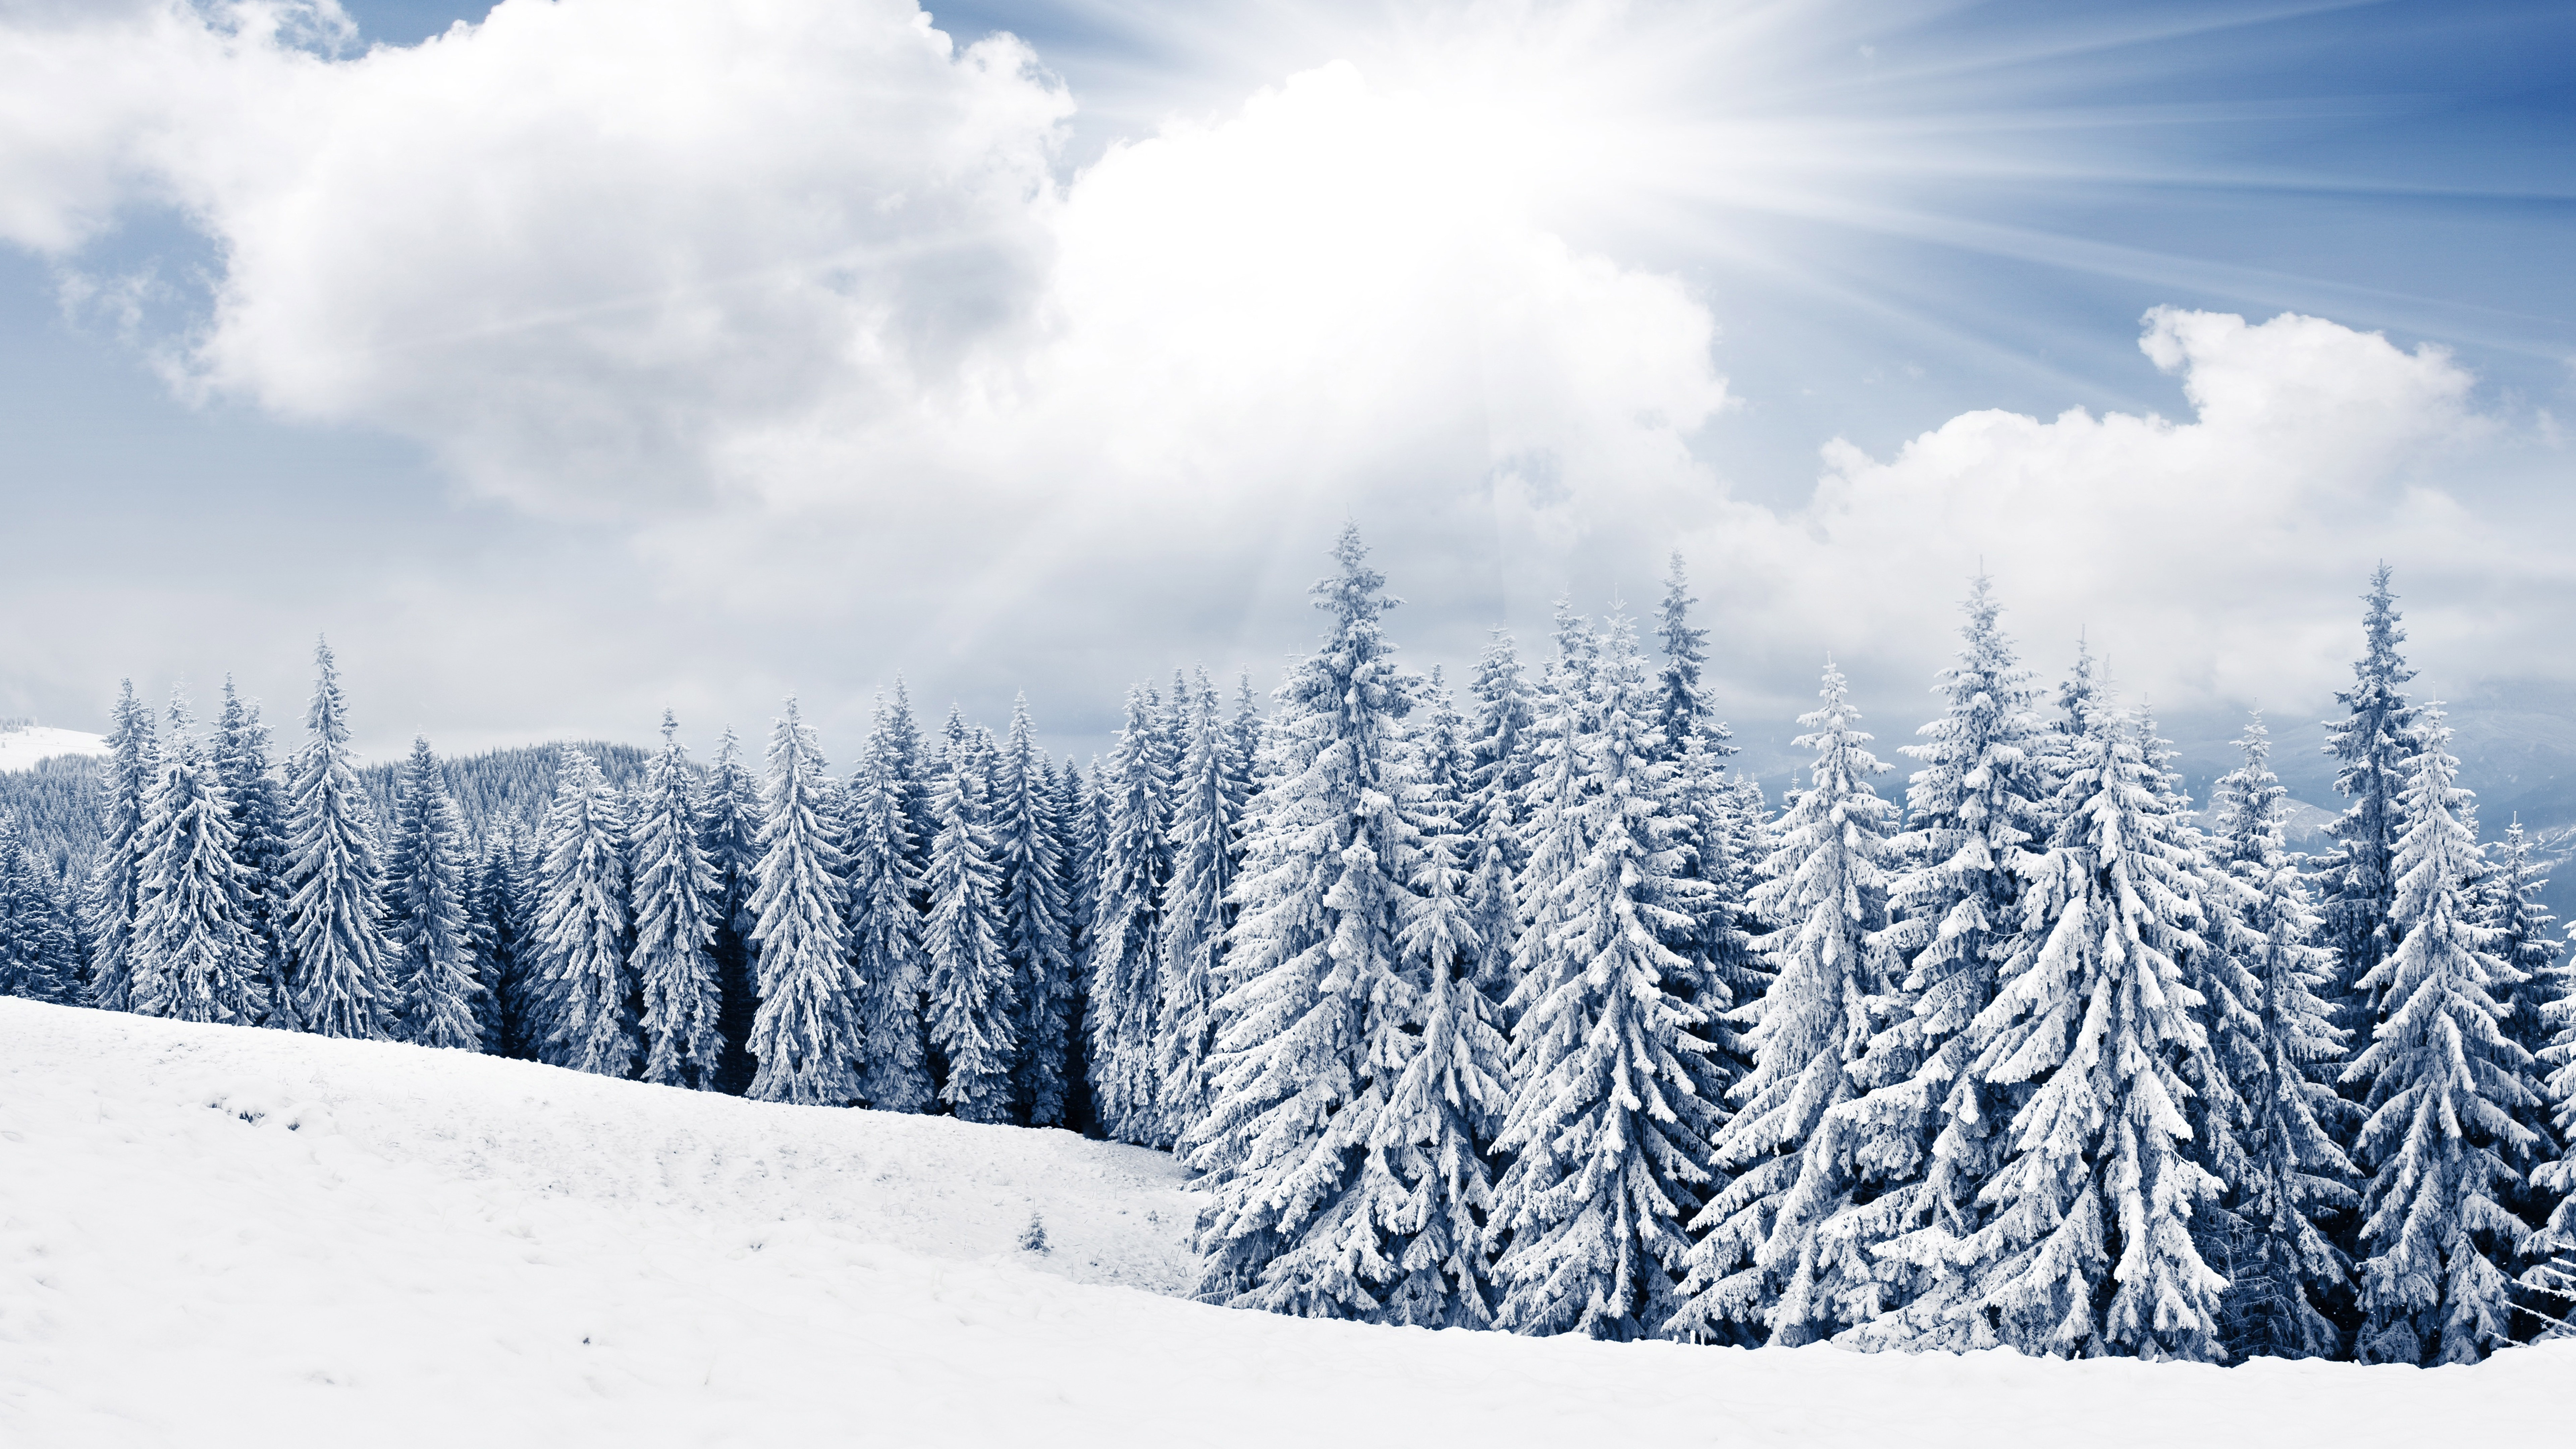 Snowy winter wallpapers high quality download free - Snowy wallpaper ...